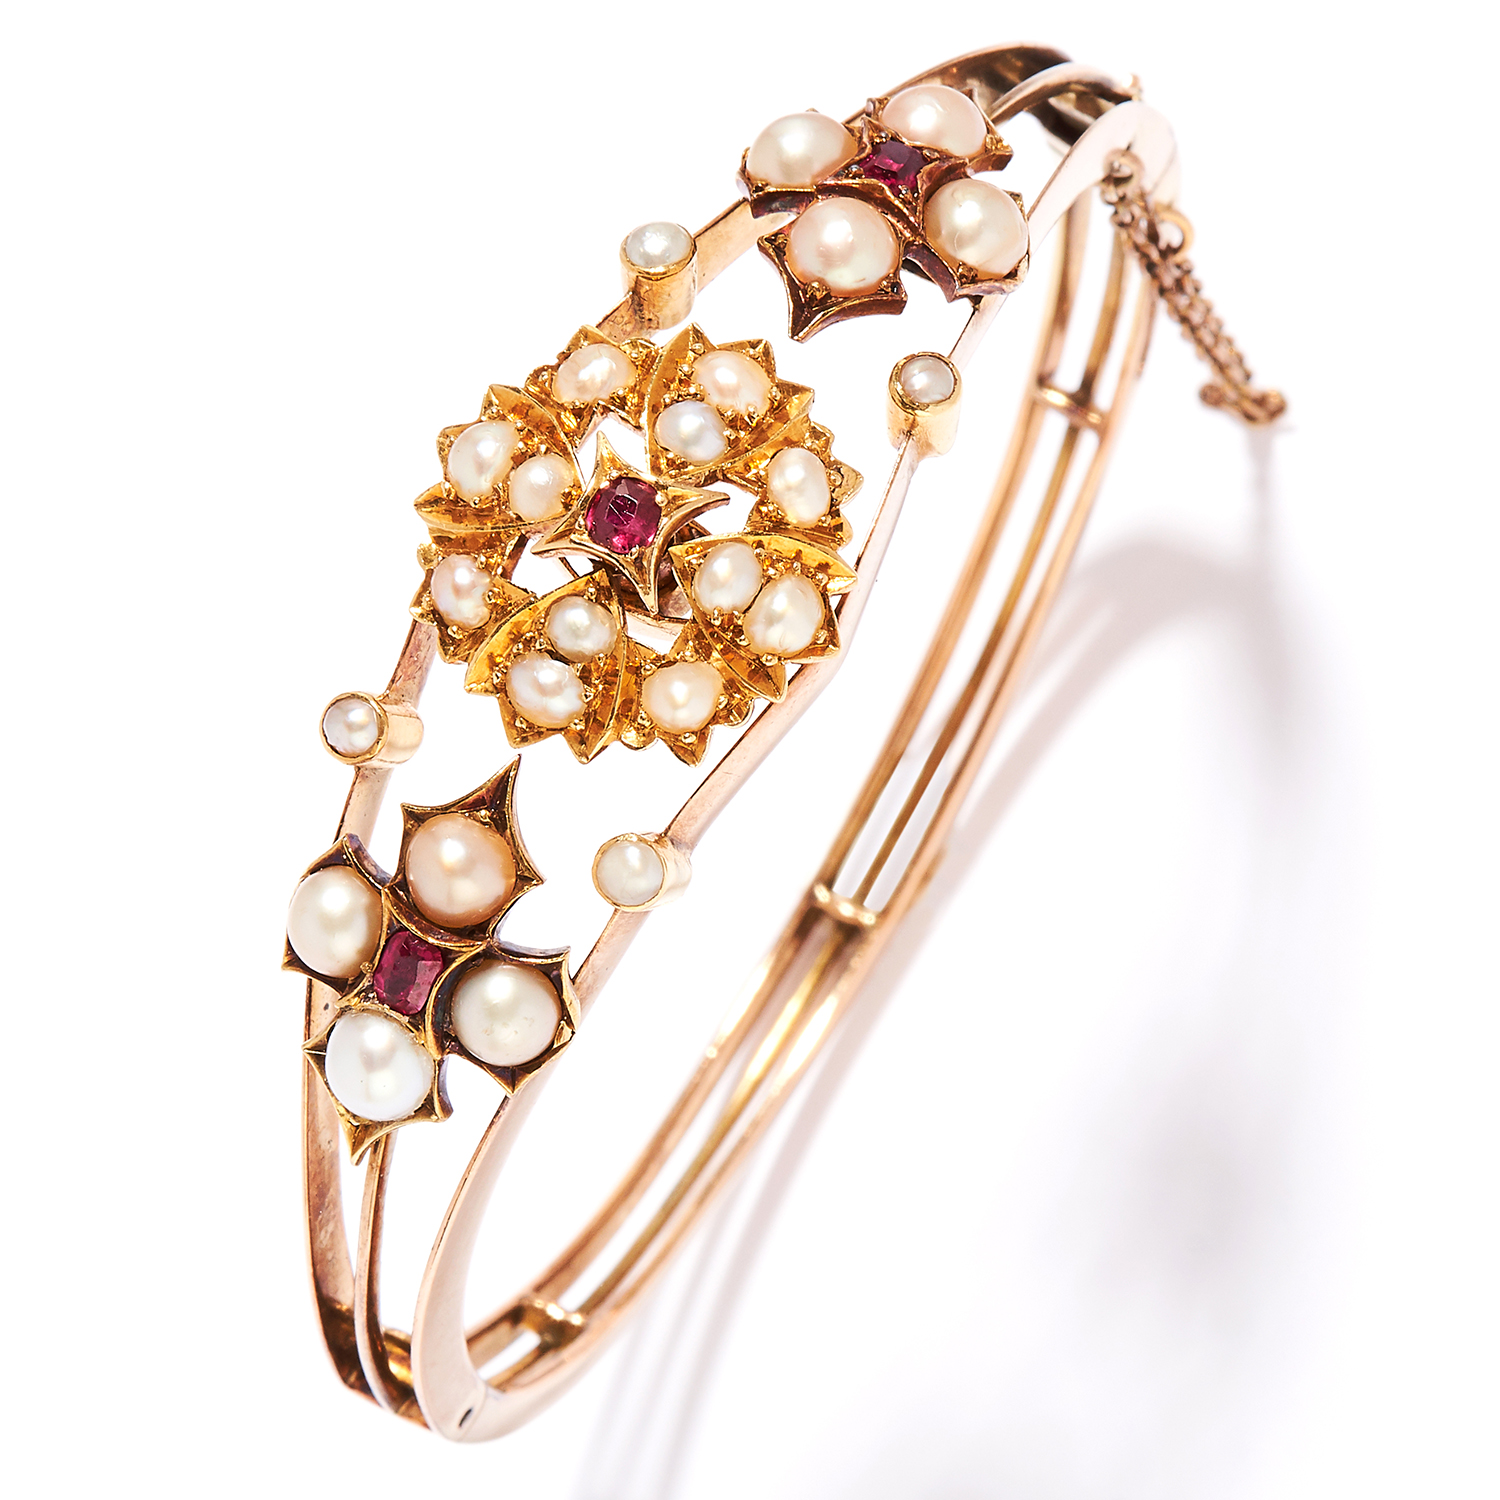 ANTIQUE PEARL AND RUBY BANGLE in 18ct yellow gold, the split, openwork design set with ruby and